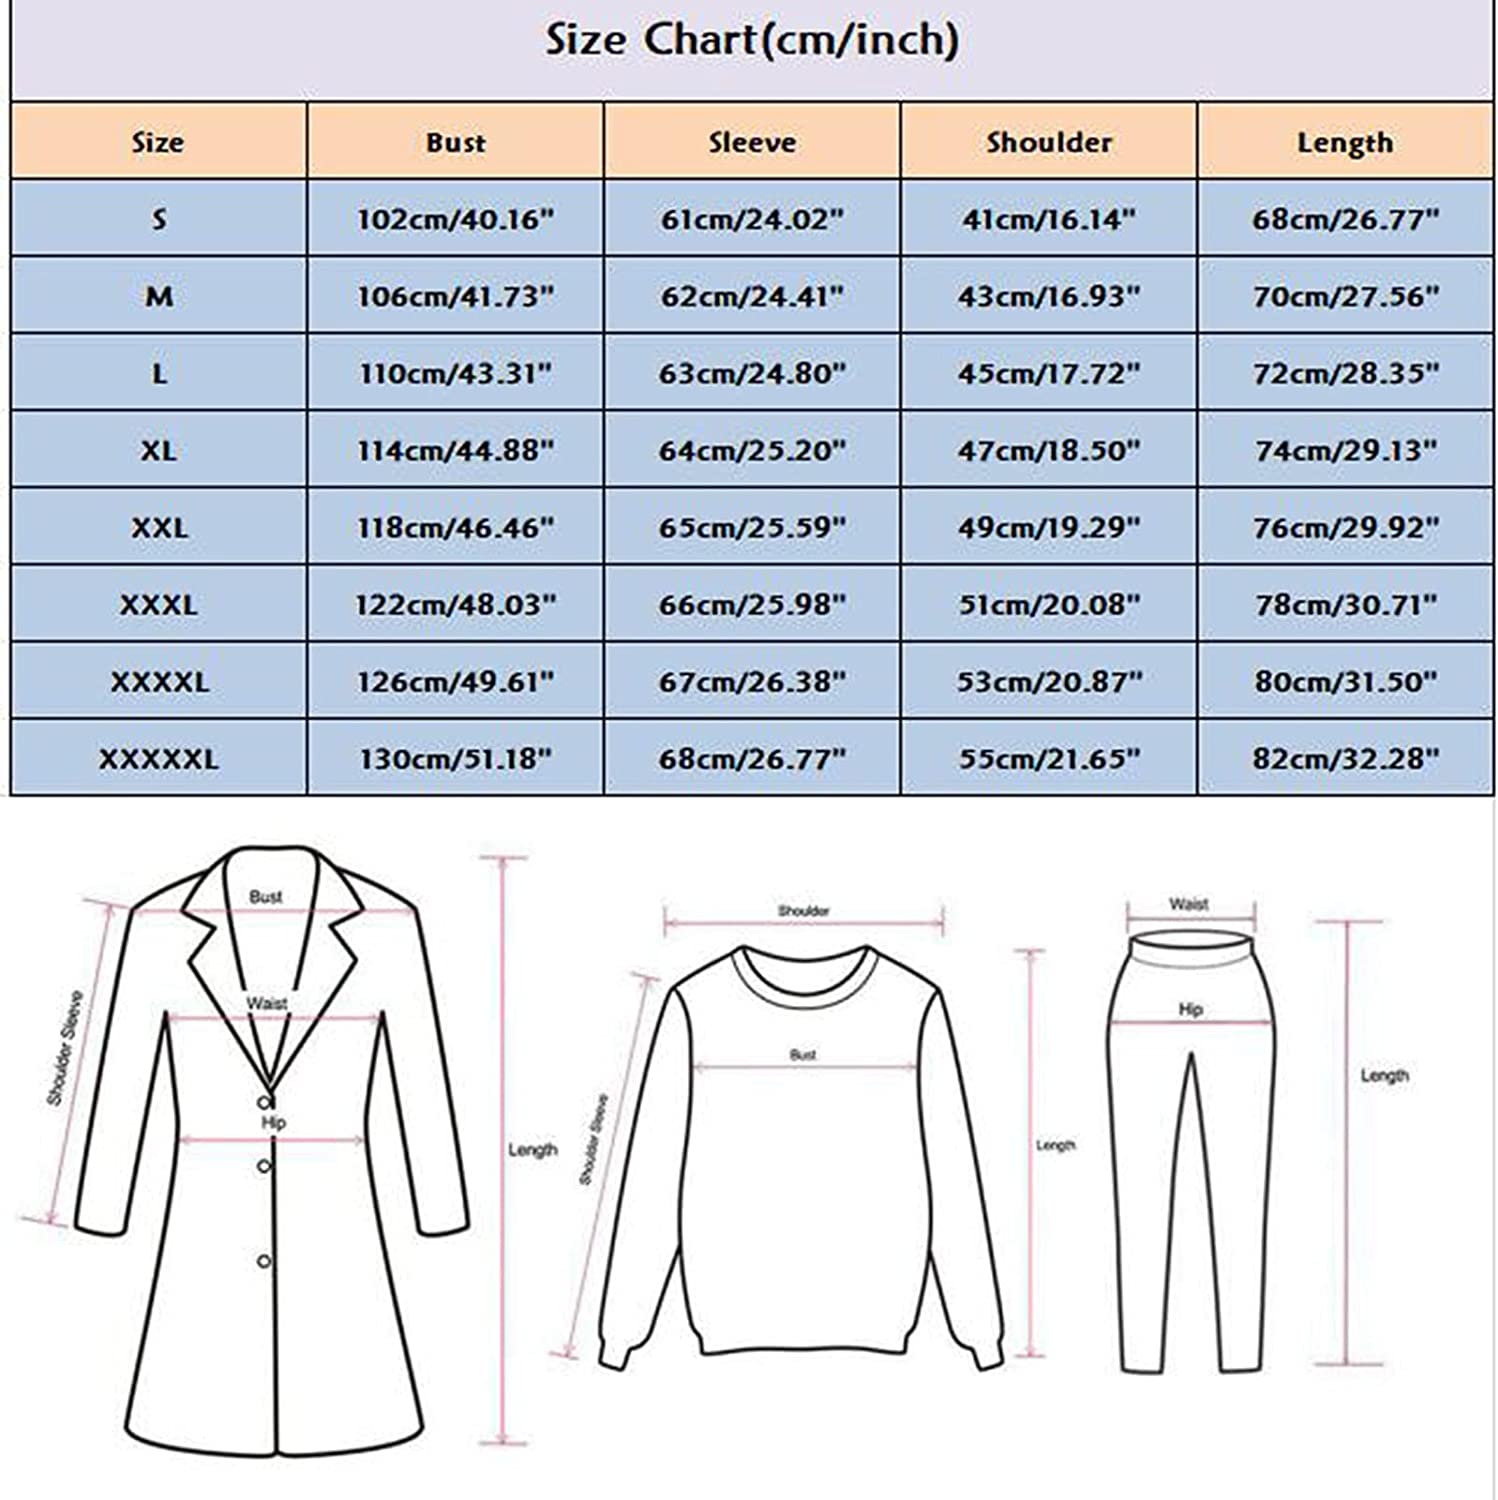 Womens Fuzzy Sweatshirt Hooded with Pockets Plus Size Tops Long Sleeve Pullover Coat Color Block Zip Outerwear for Teen Girls